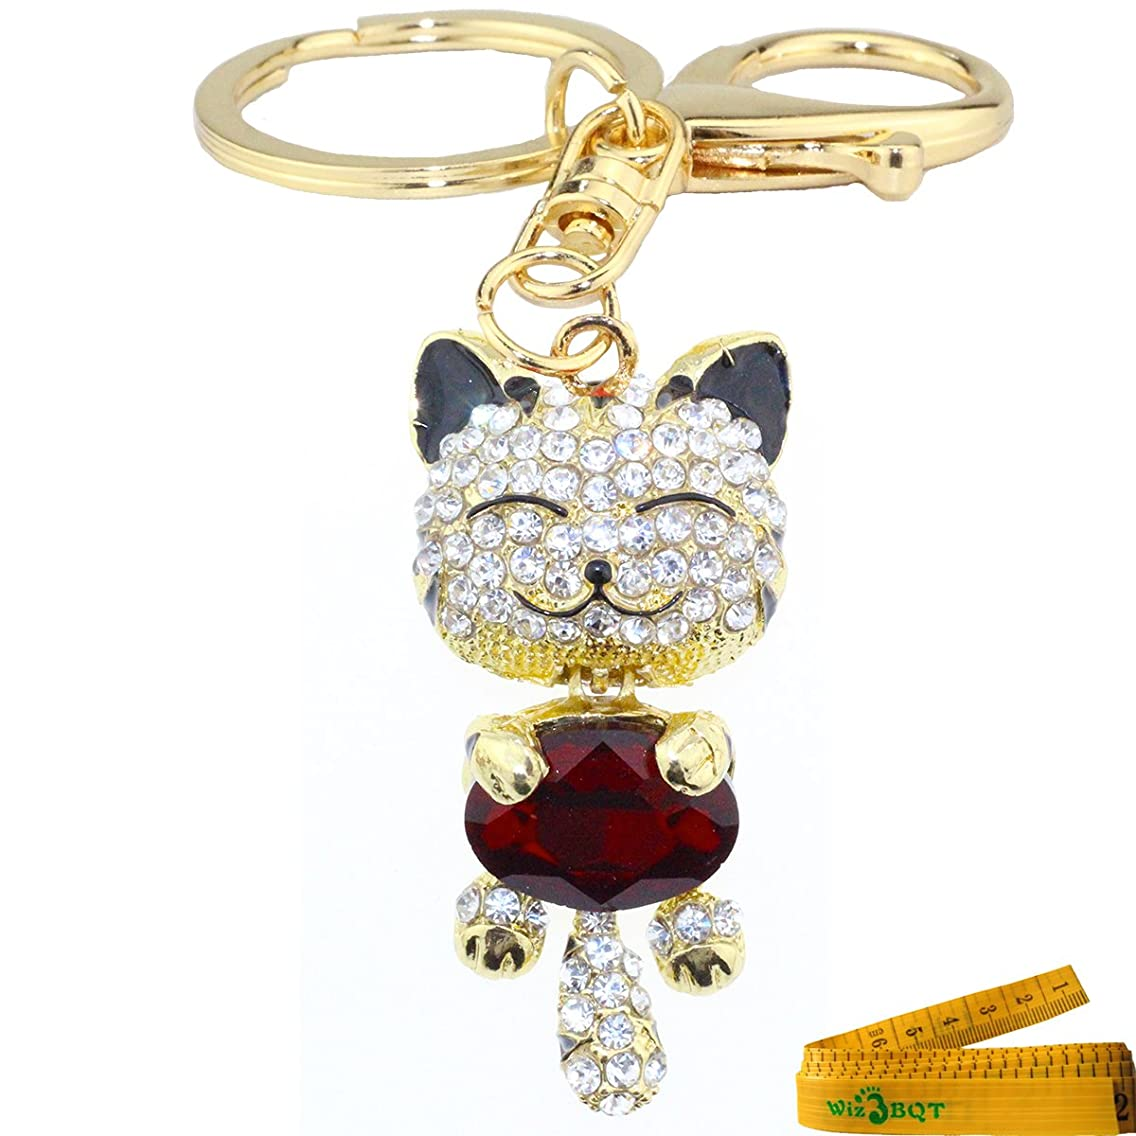 Cute Kitten Cat Charming Bling Bling Crystals Rhinestone Metal Keychain Key Ring Handbag Cell phone Purse Hanging Charm Pendent Decor Gift (Burgundy)